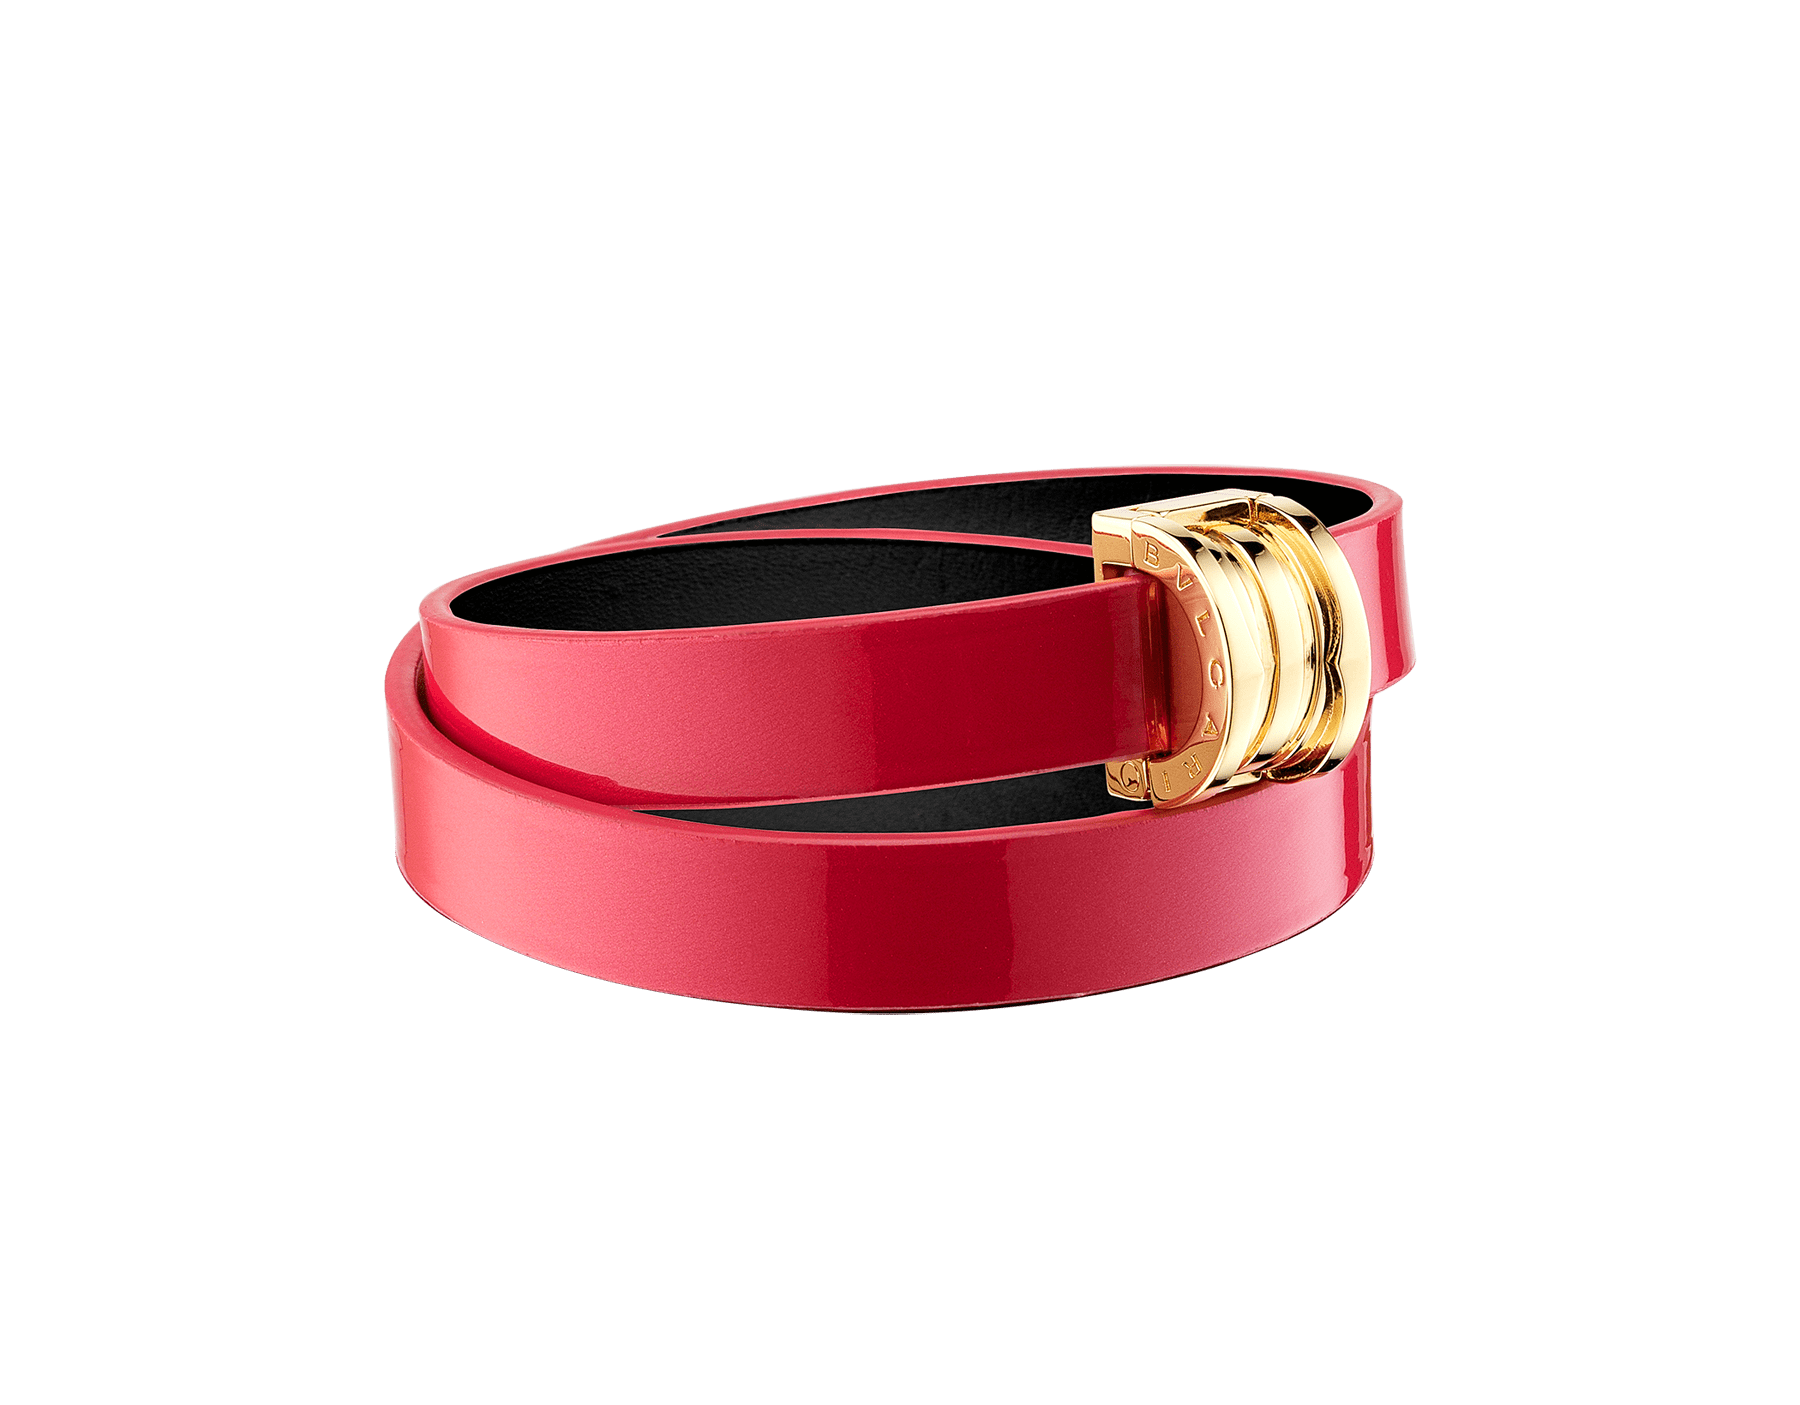 """""""BVLGARI BVLGARI"""" double-coiled bracelet in Amaranth Garnet red calf leather with a varnished and pearled effect, finished with a B.Zero1 snap closure in gold plated brass. BZERO1-VCL-AG image 1"""